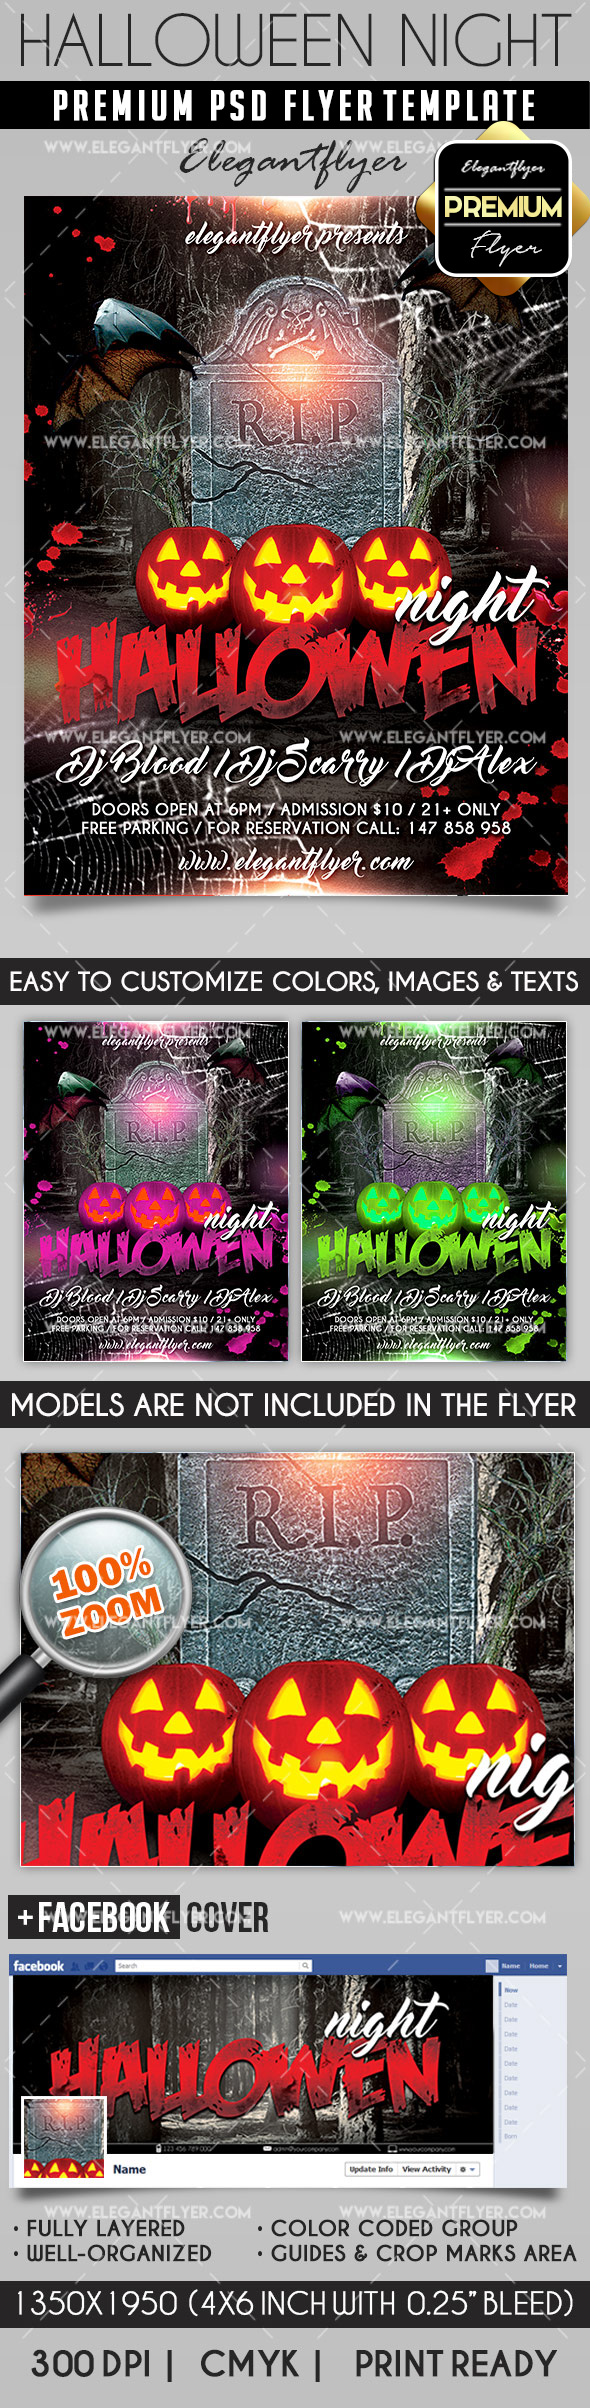 Halloween Night Hour PSD Flyer